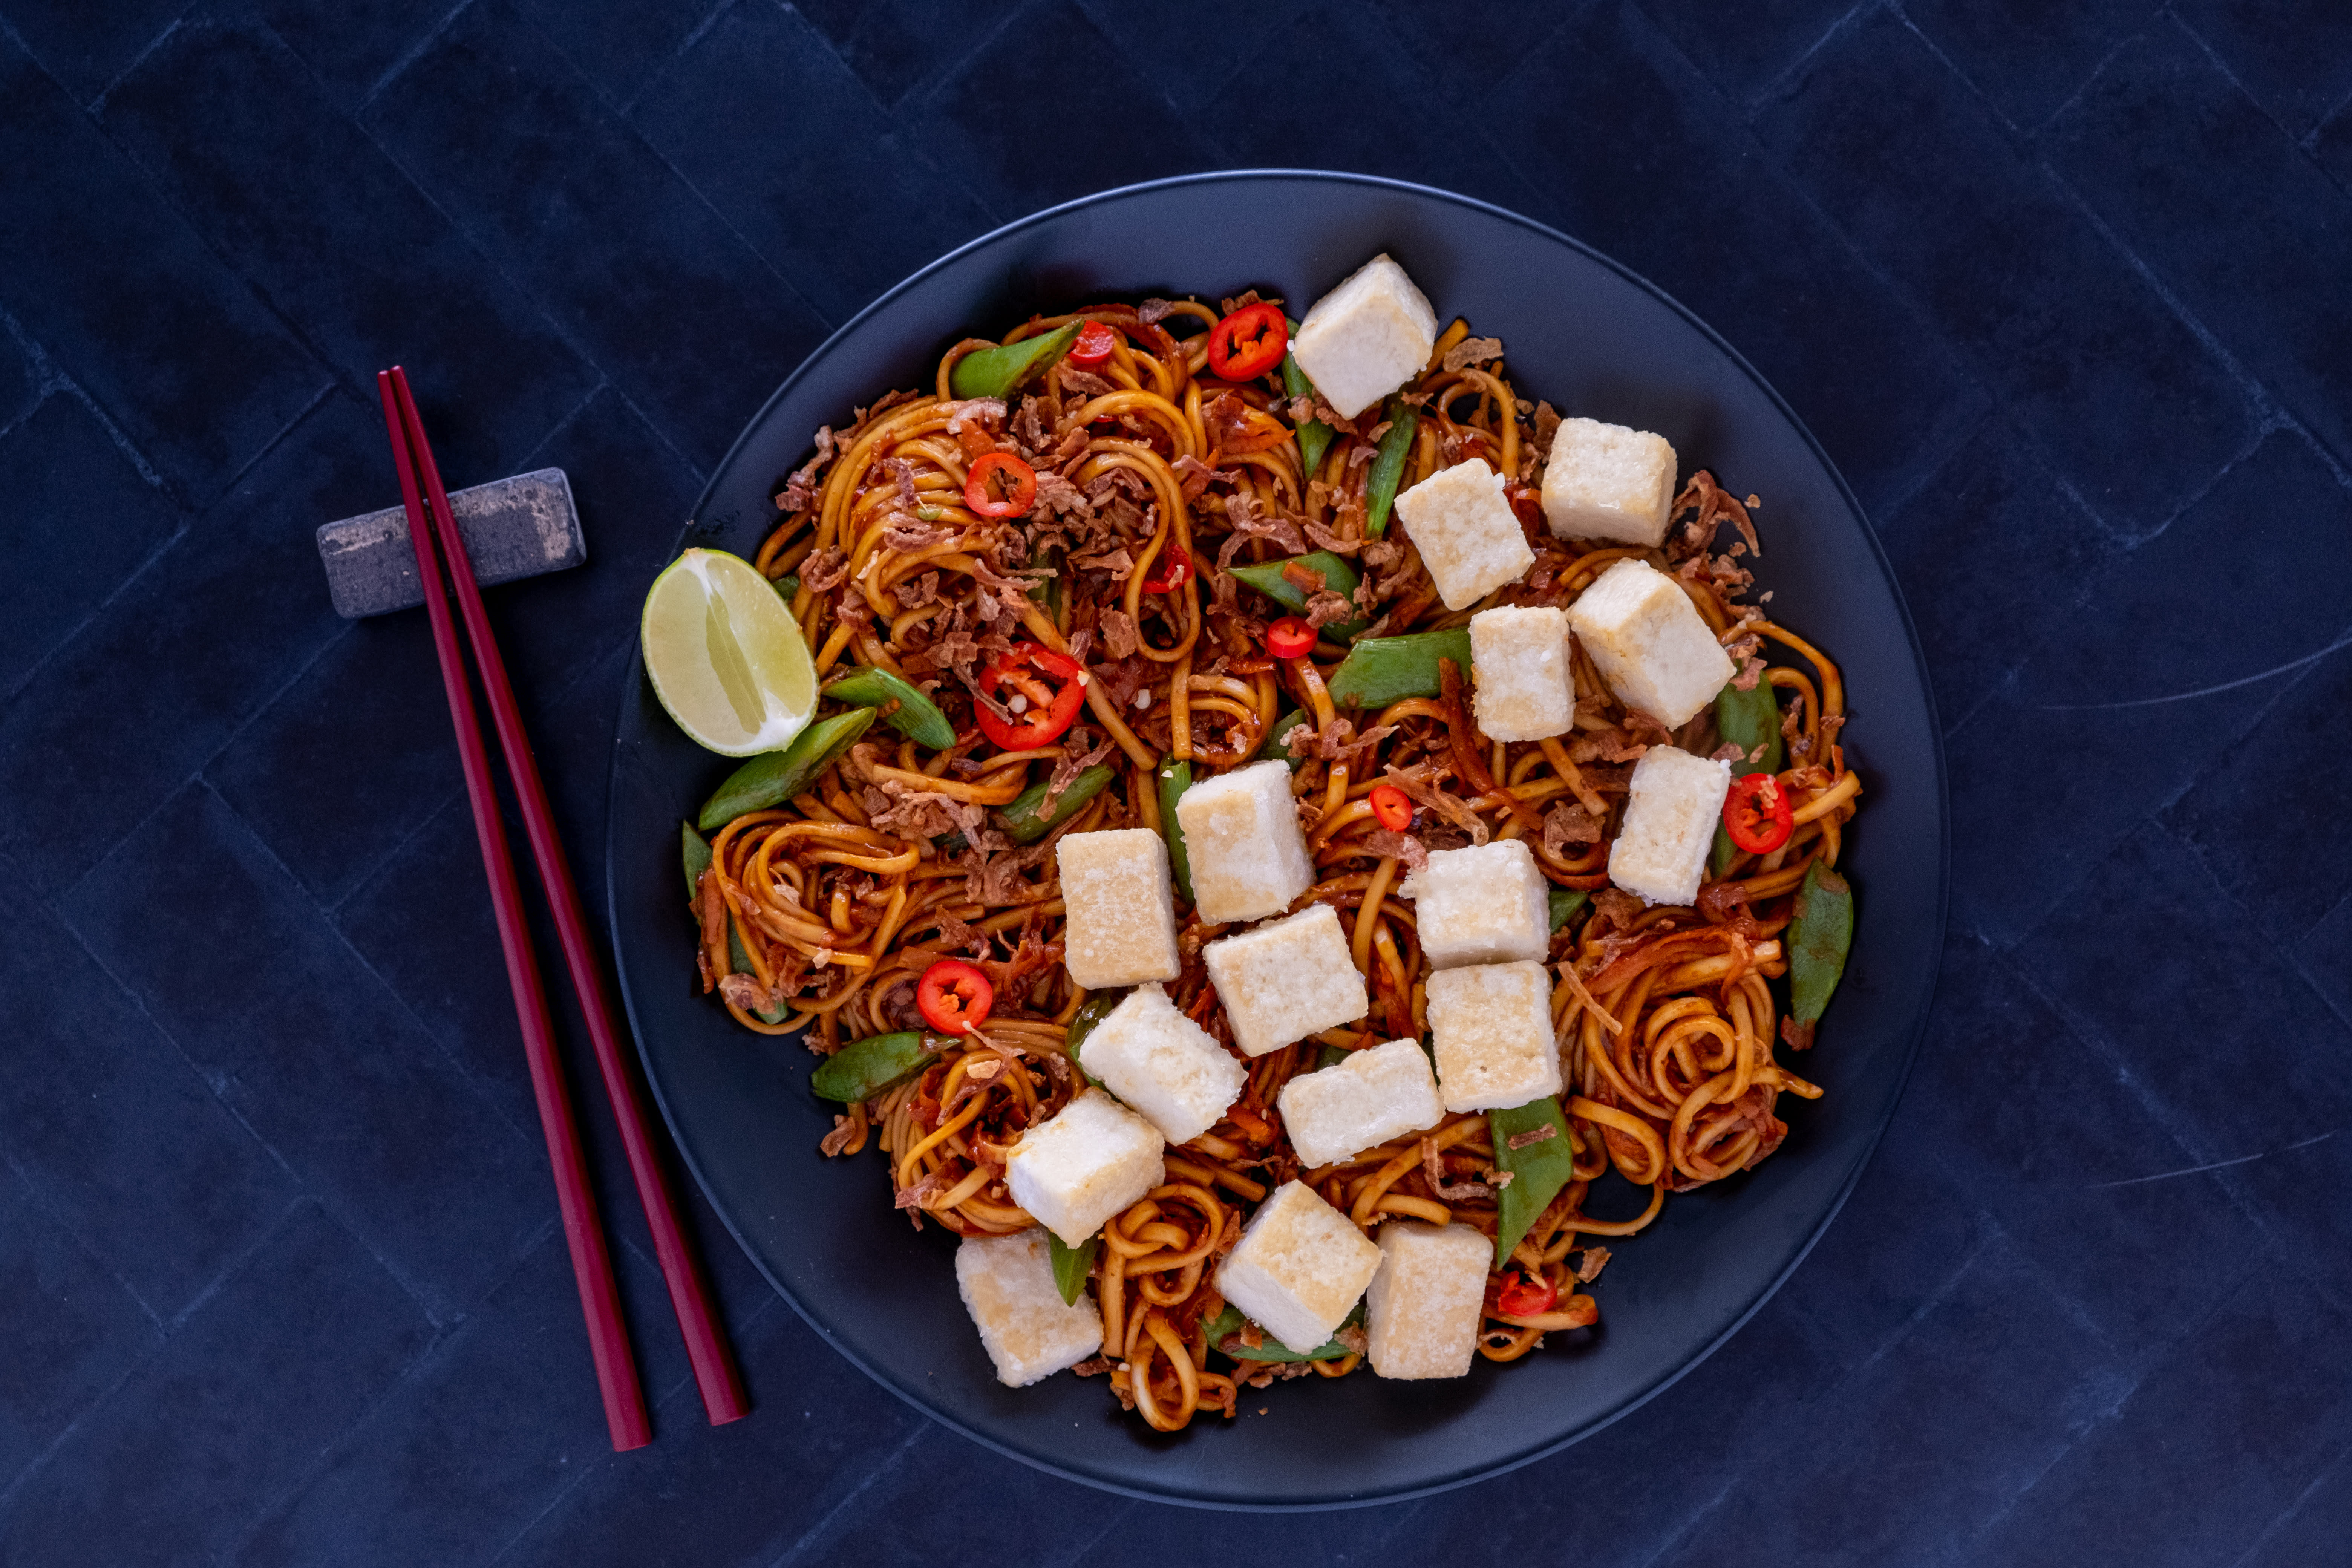 Crispy Tofu Noodles with Snap Peas and Beansprouts